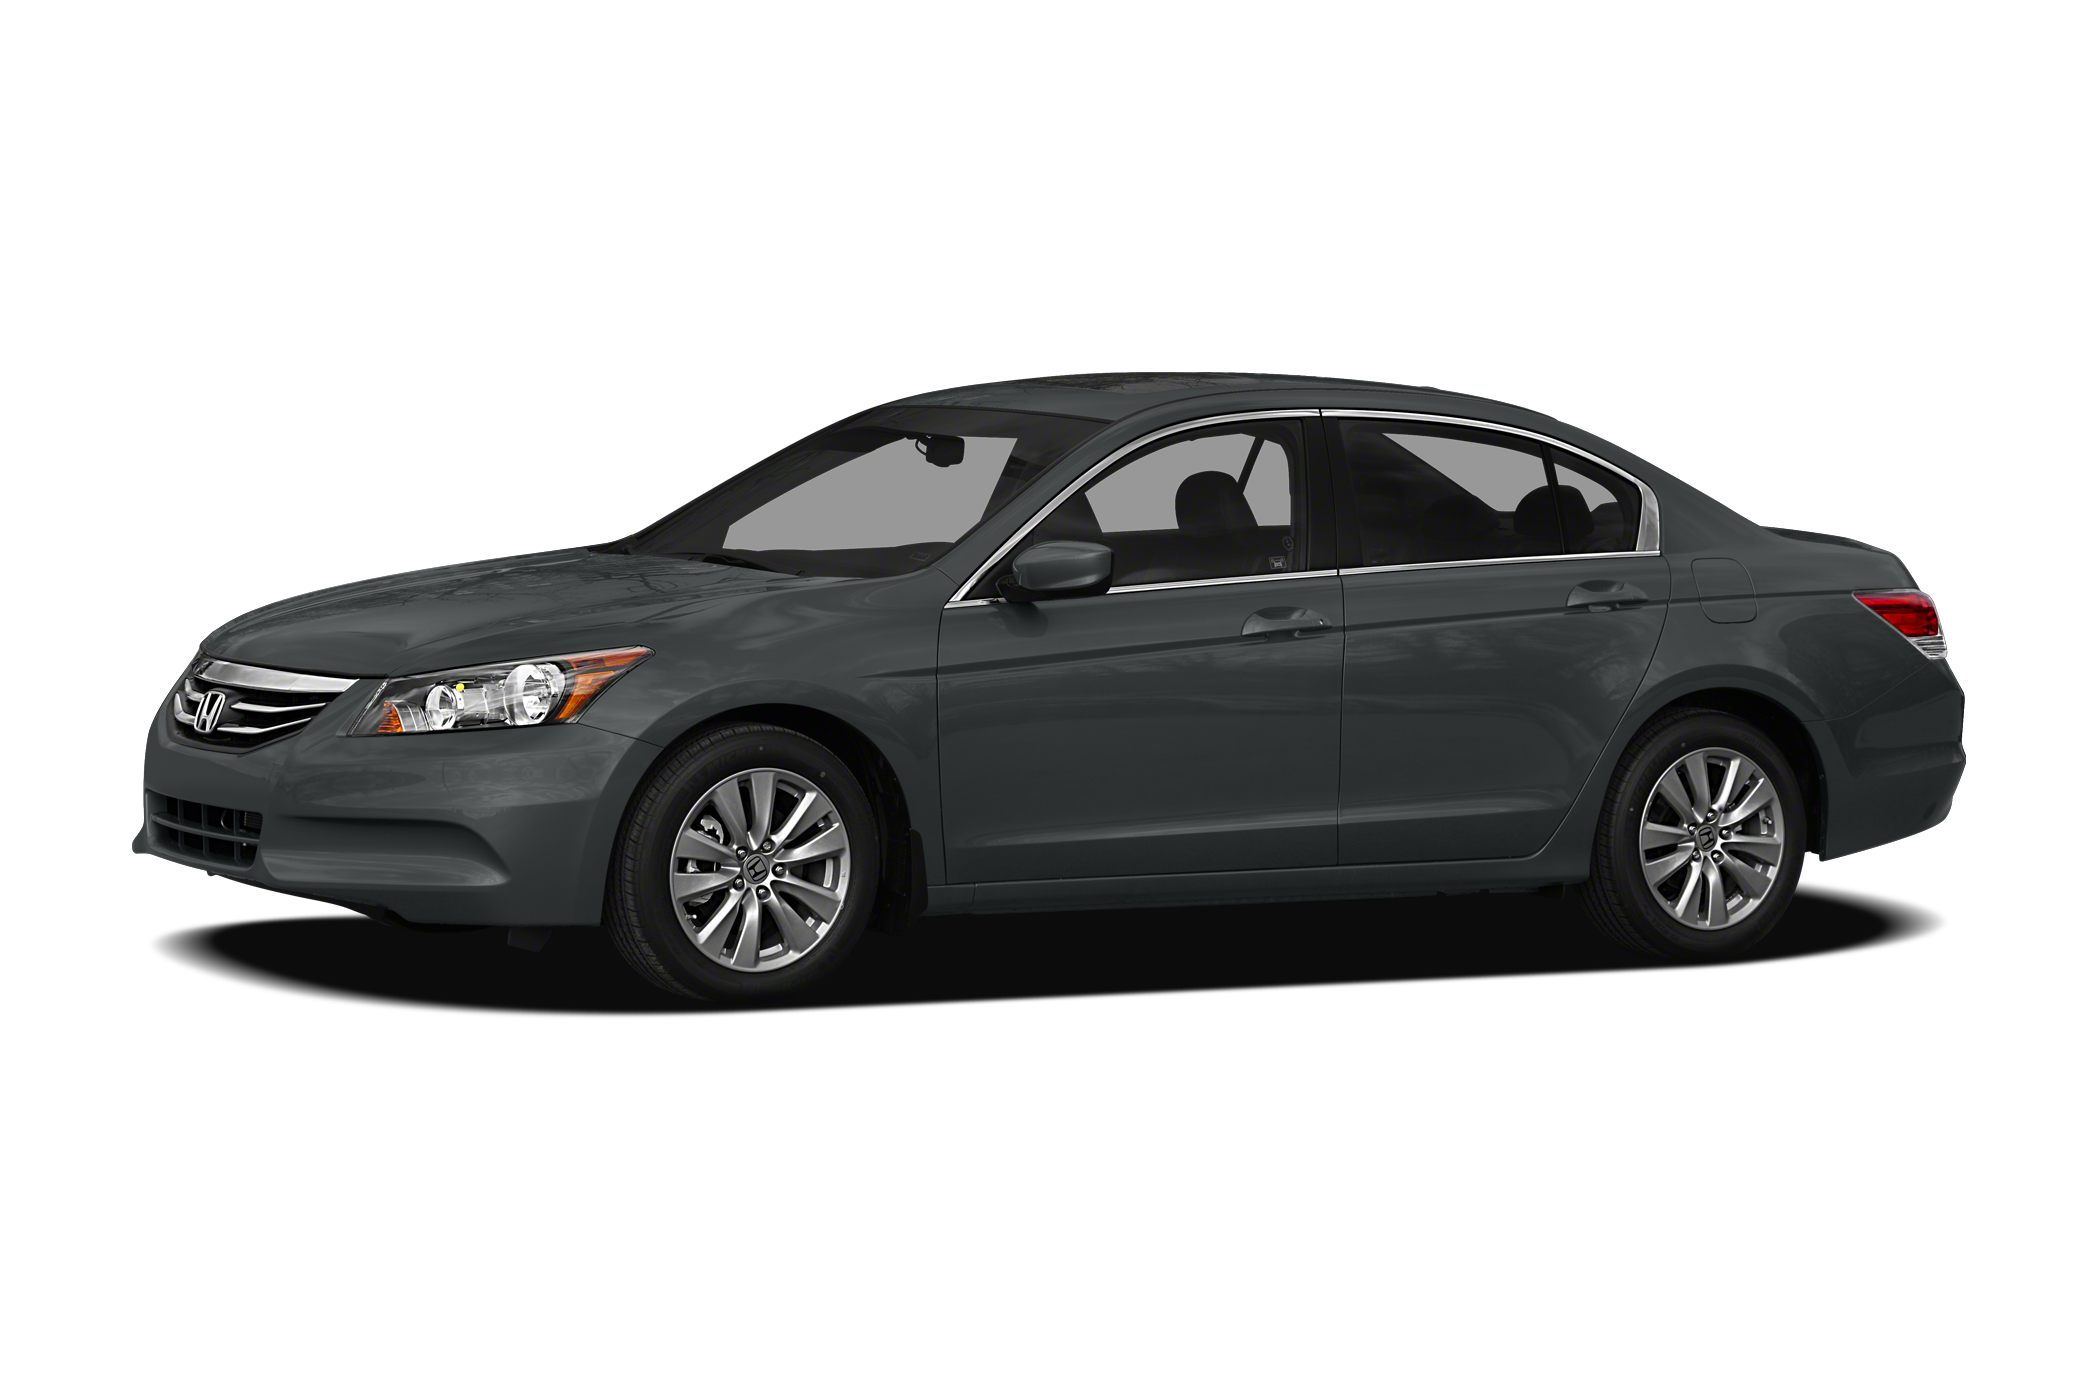 2011 Honda Accord 24 LX-P LX-P EDITIONFRESH LOCAL TRADECARFAX CERTIFIEDDEALER MAINTAINED